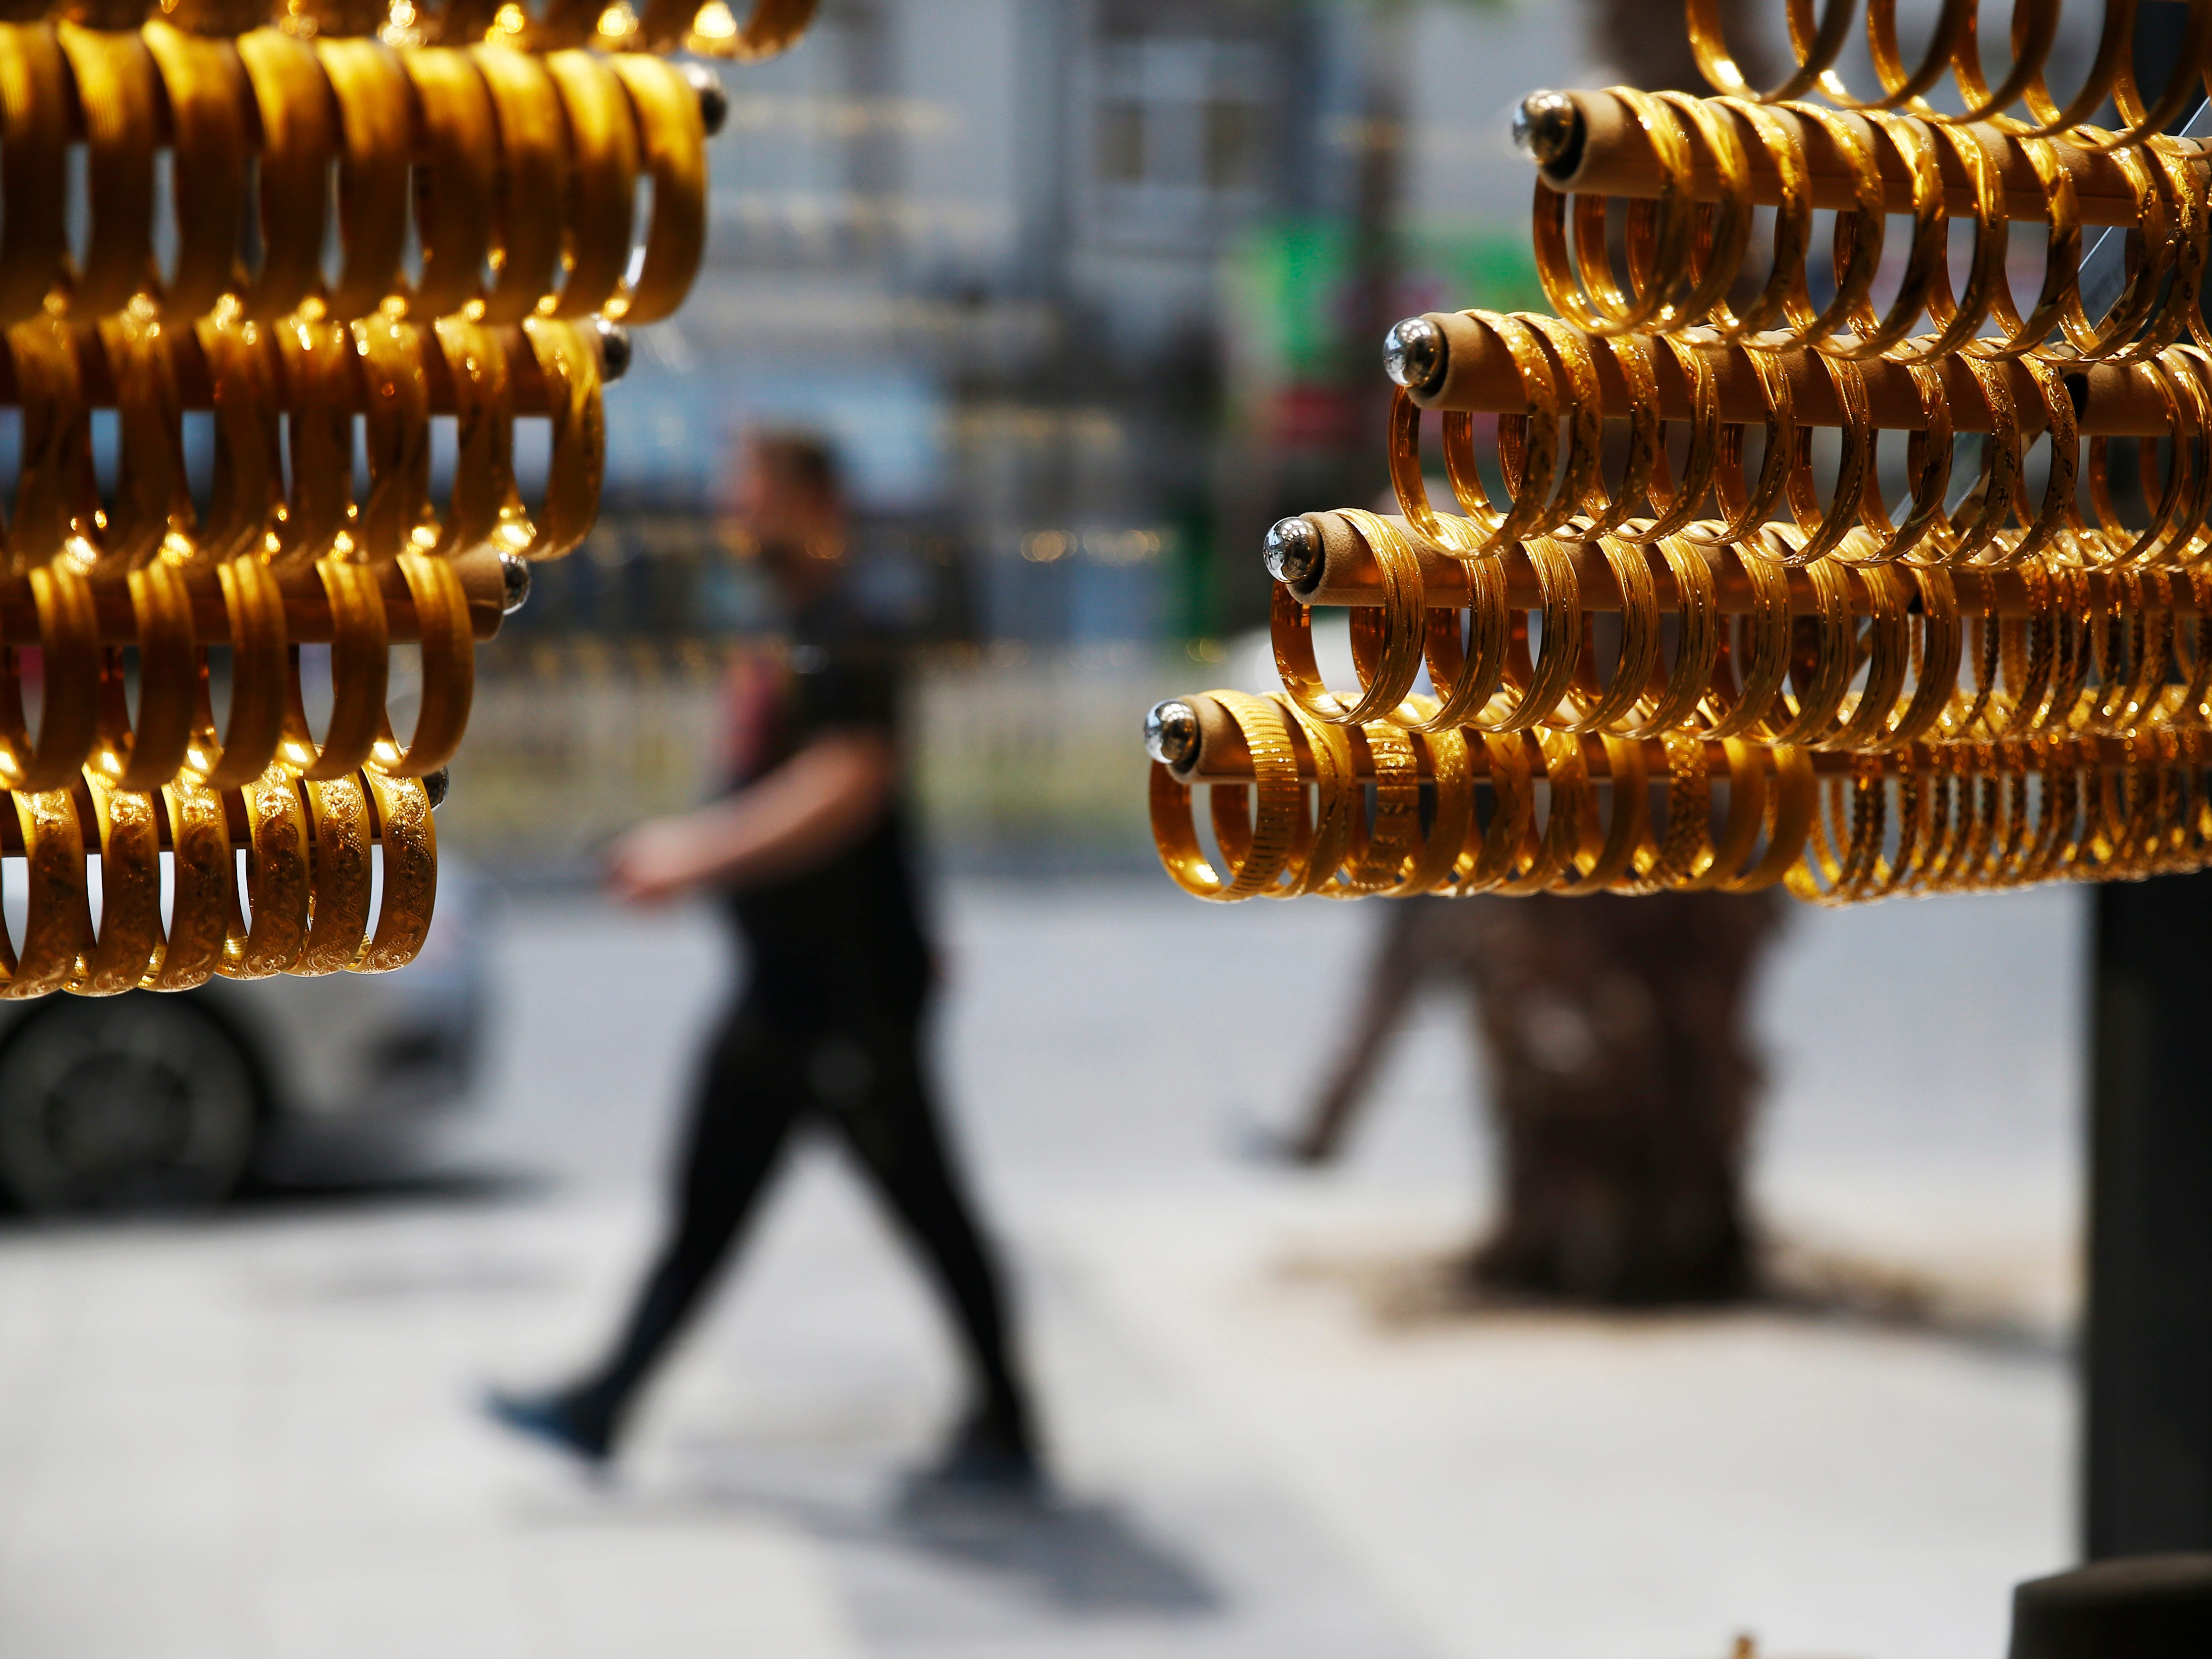 Gold bracelets are displayed at a shop in Istanbul, Aug. 15, 2018. Gold buyers say they have seen an uptick over the past few days of customers selling their shiny coins and goods. The Turkish lira has dropped to record lows in recent weeks, having fallen some 42 percent so far this year.